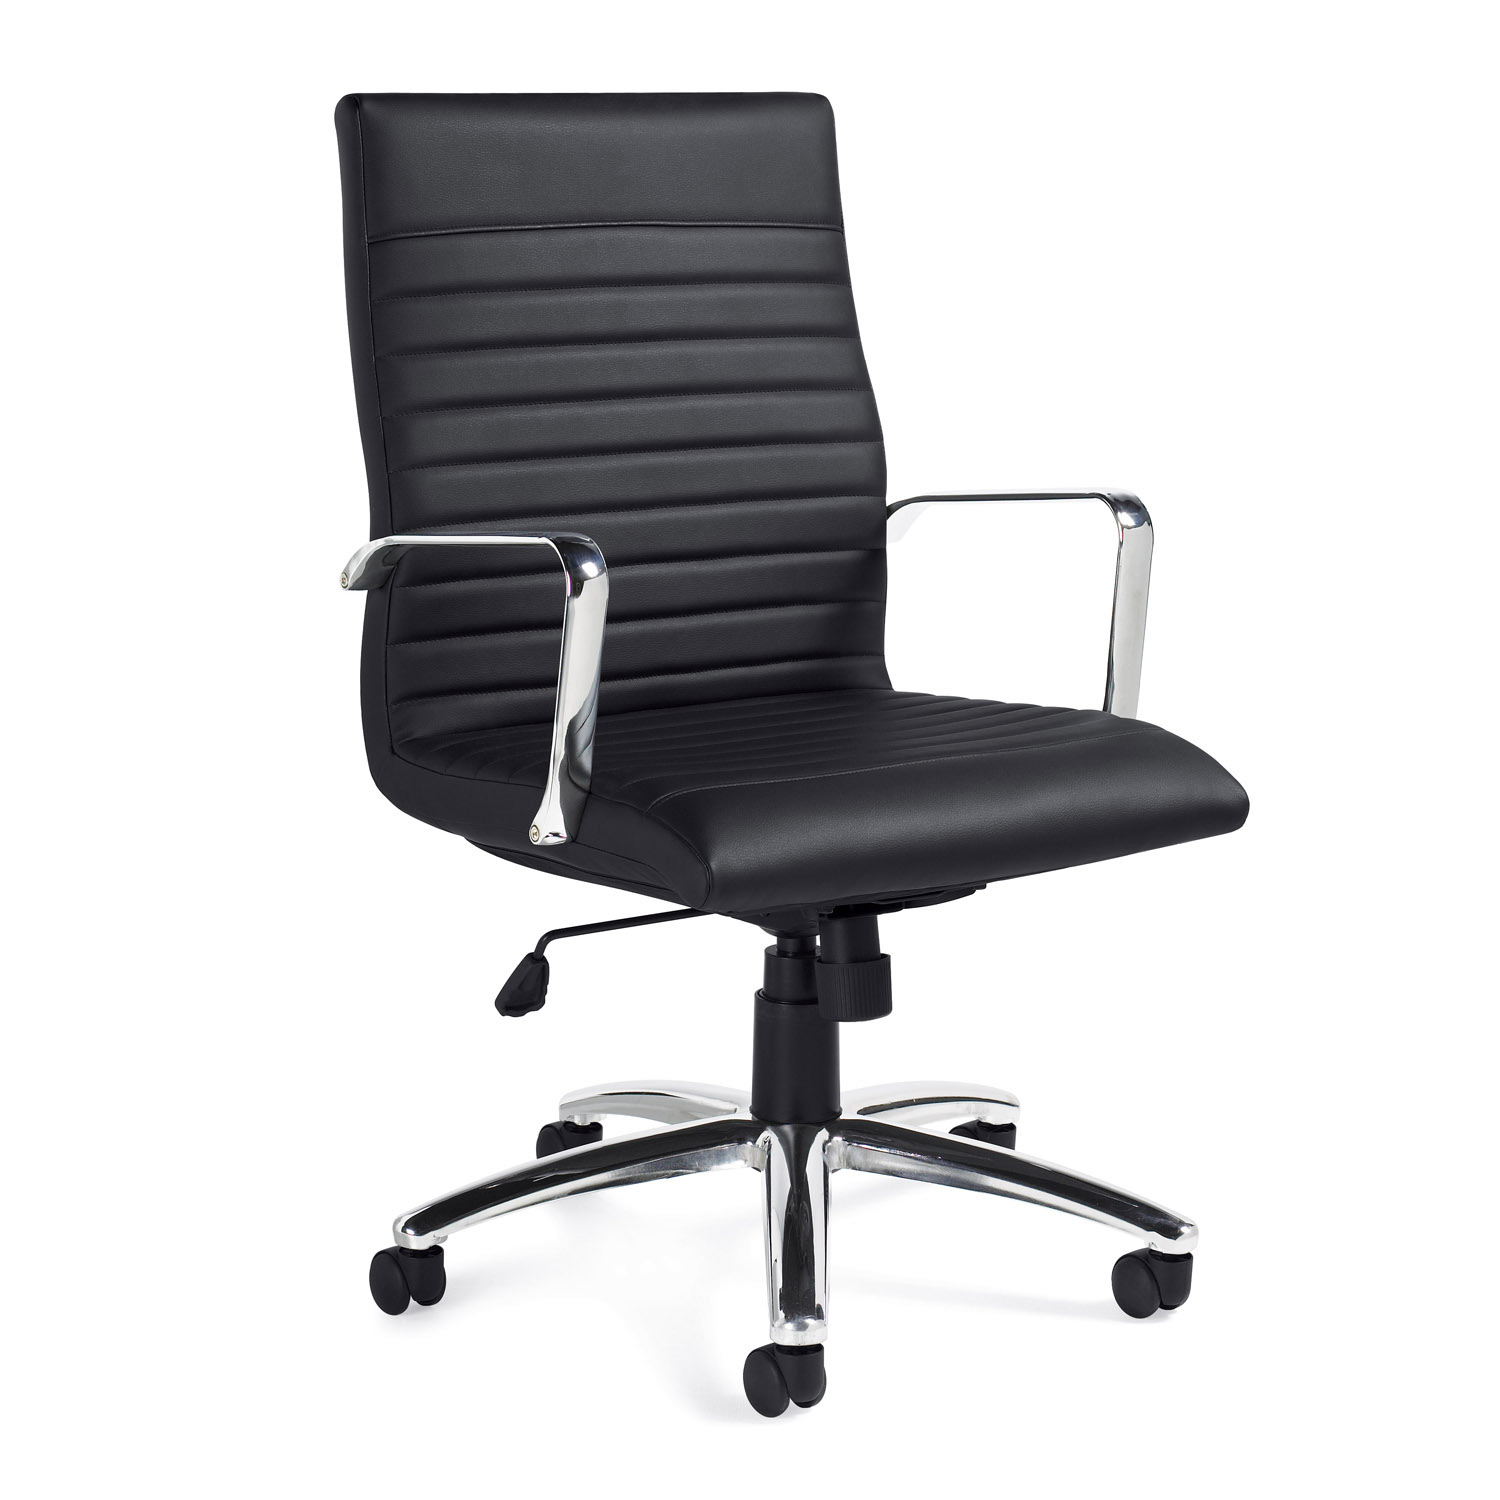 Chairs For Office #11730B